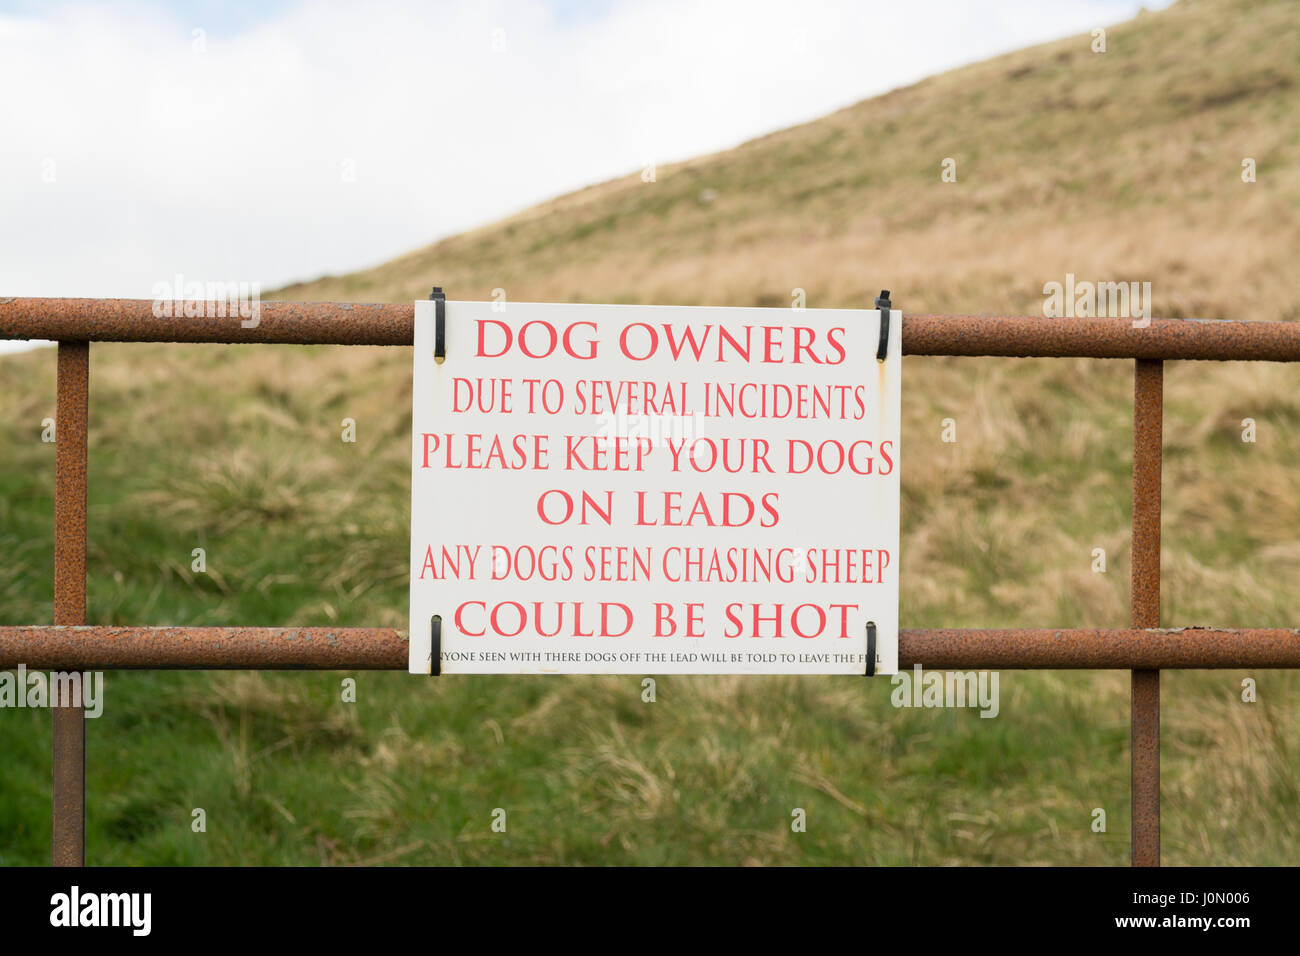 Les chiens non pas sur les leads chasing sheep warning sign on leur orthographe Banque D'Images